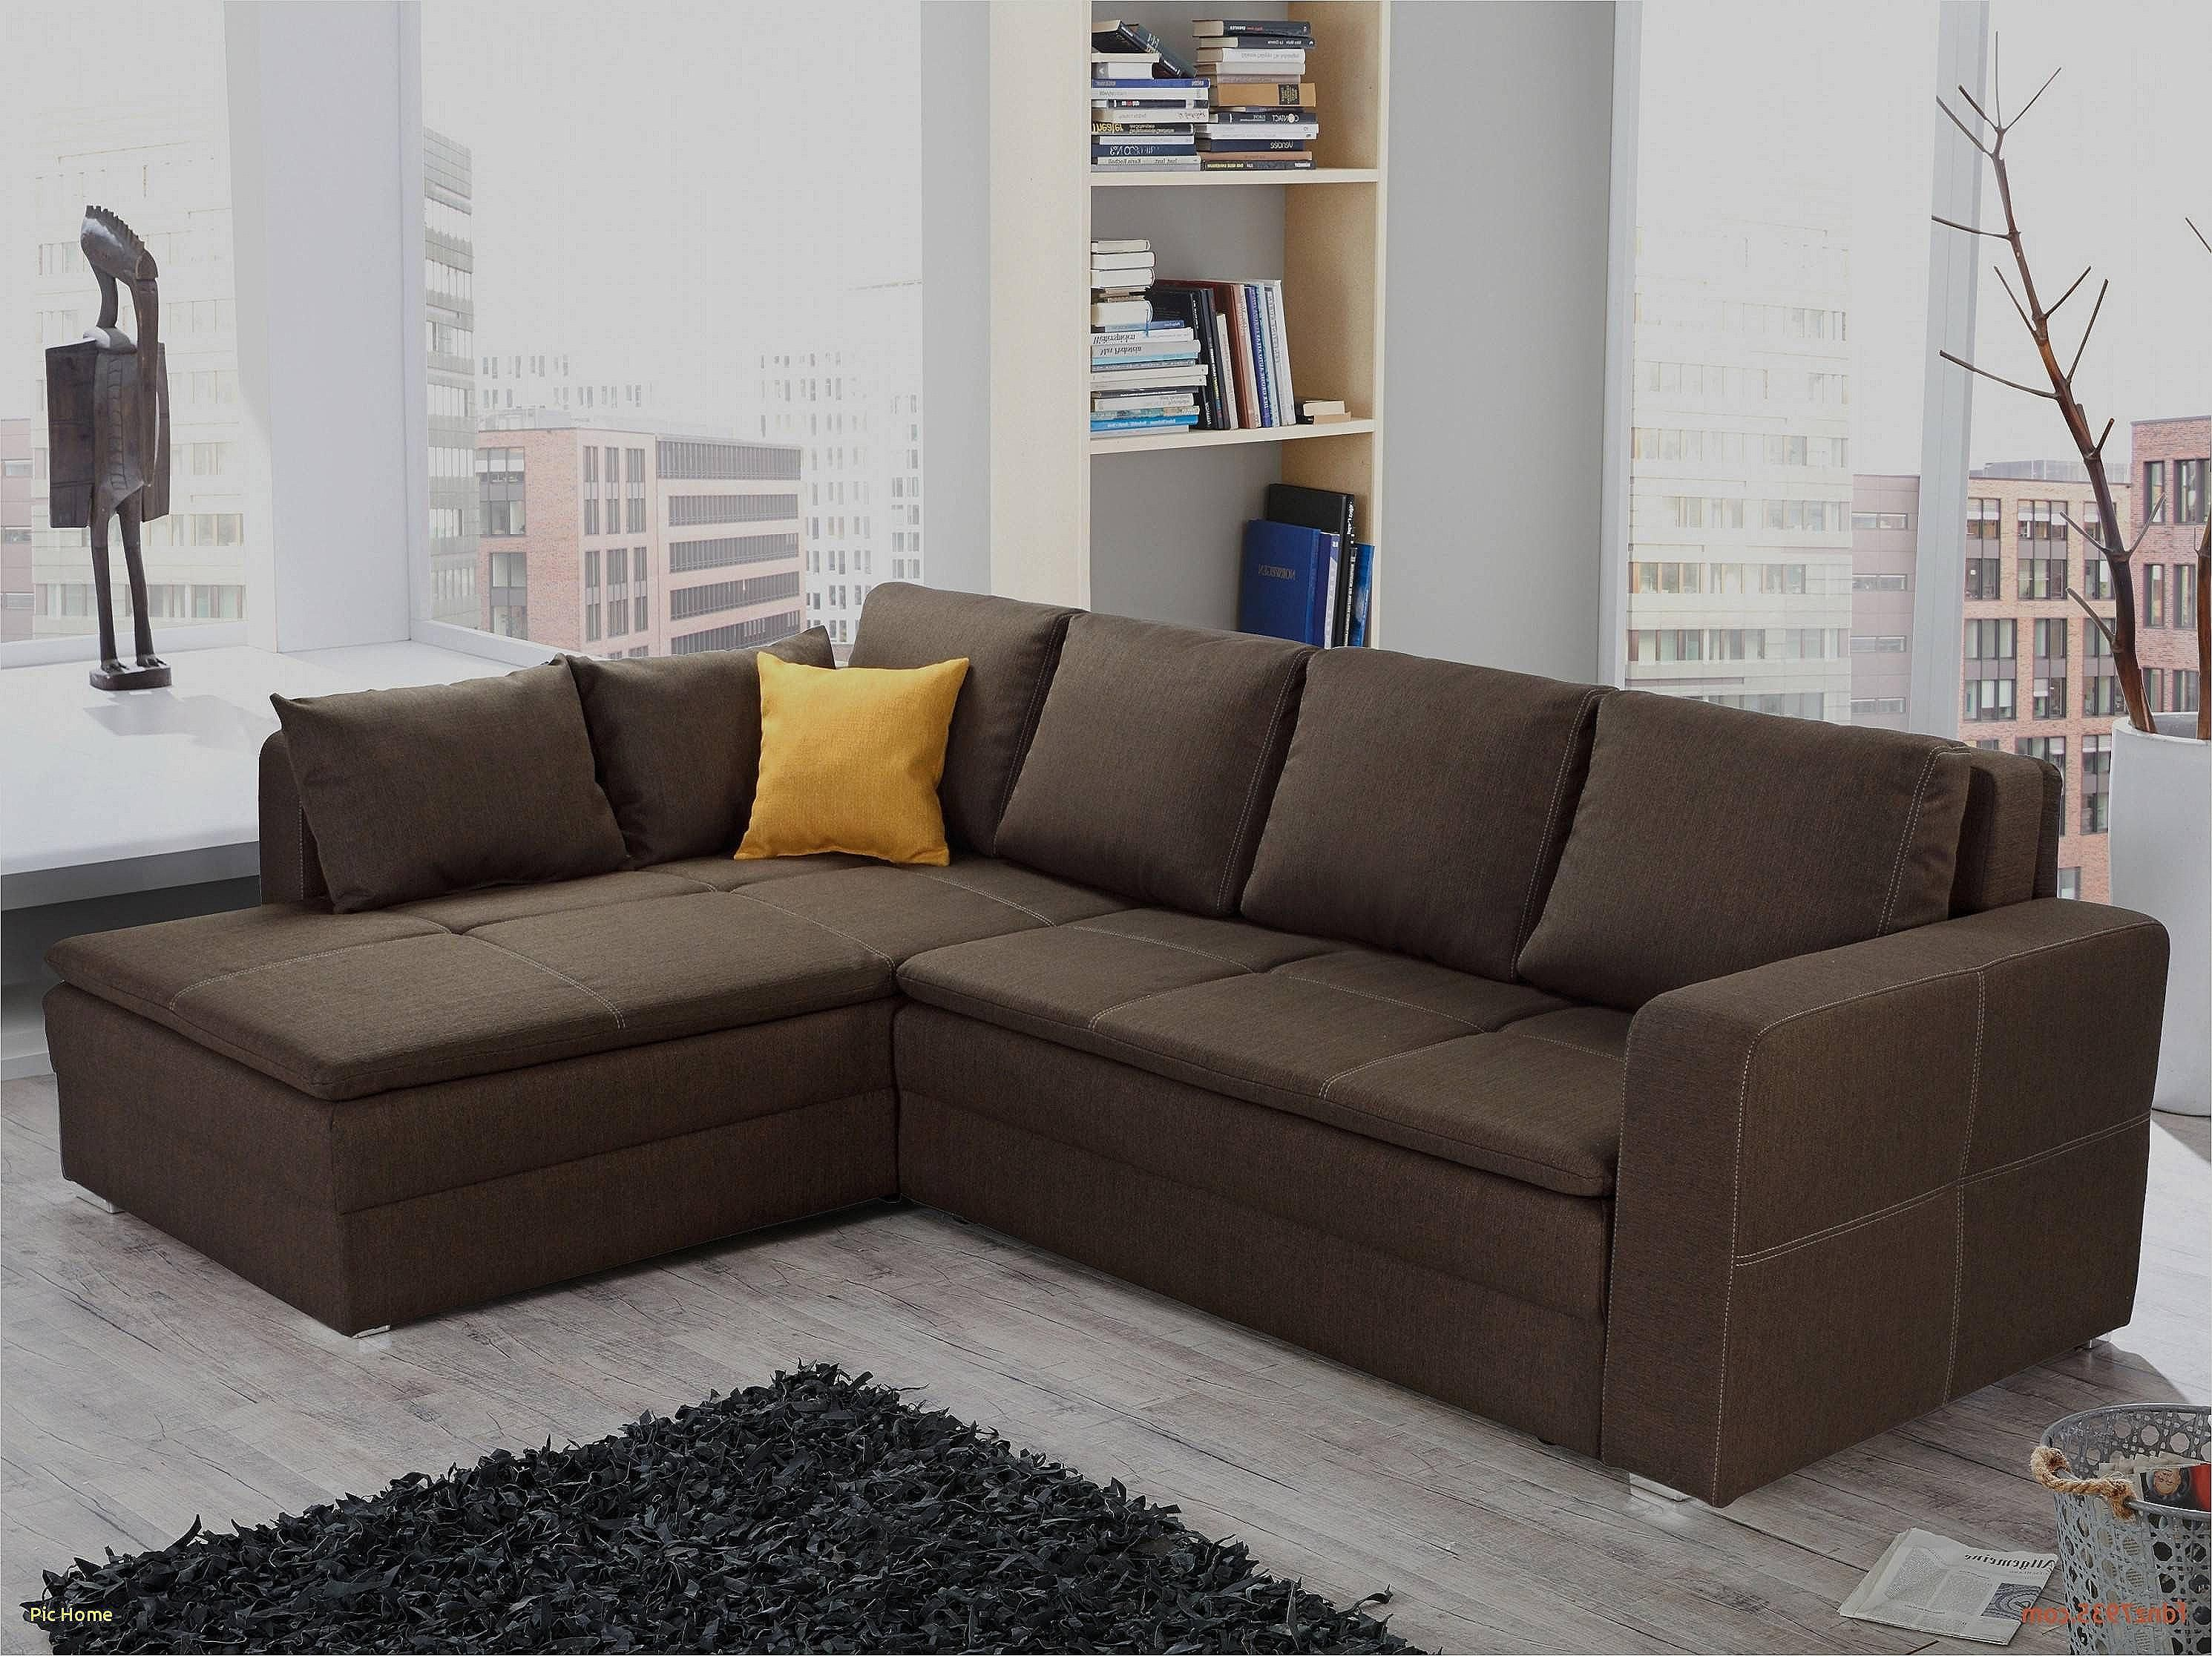 Pin On Interior Design #small #living #room #with #l #shaped #sofa